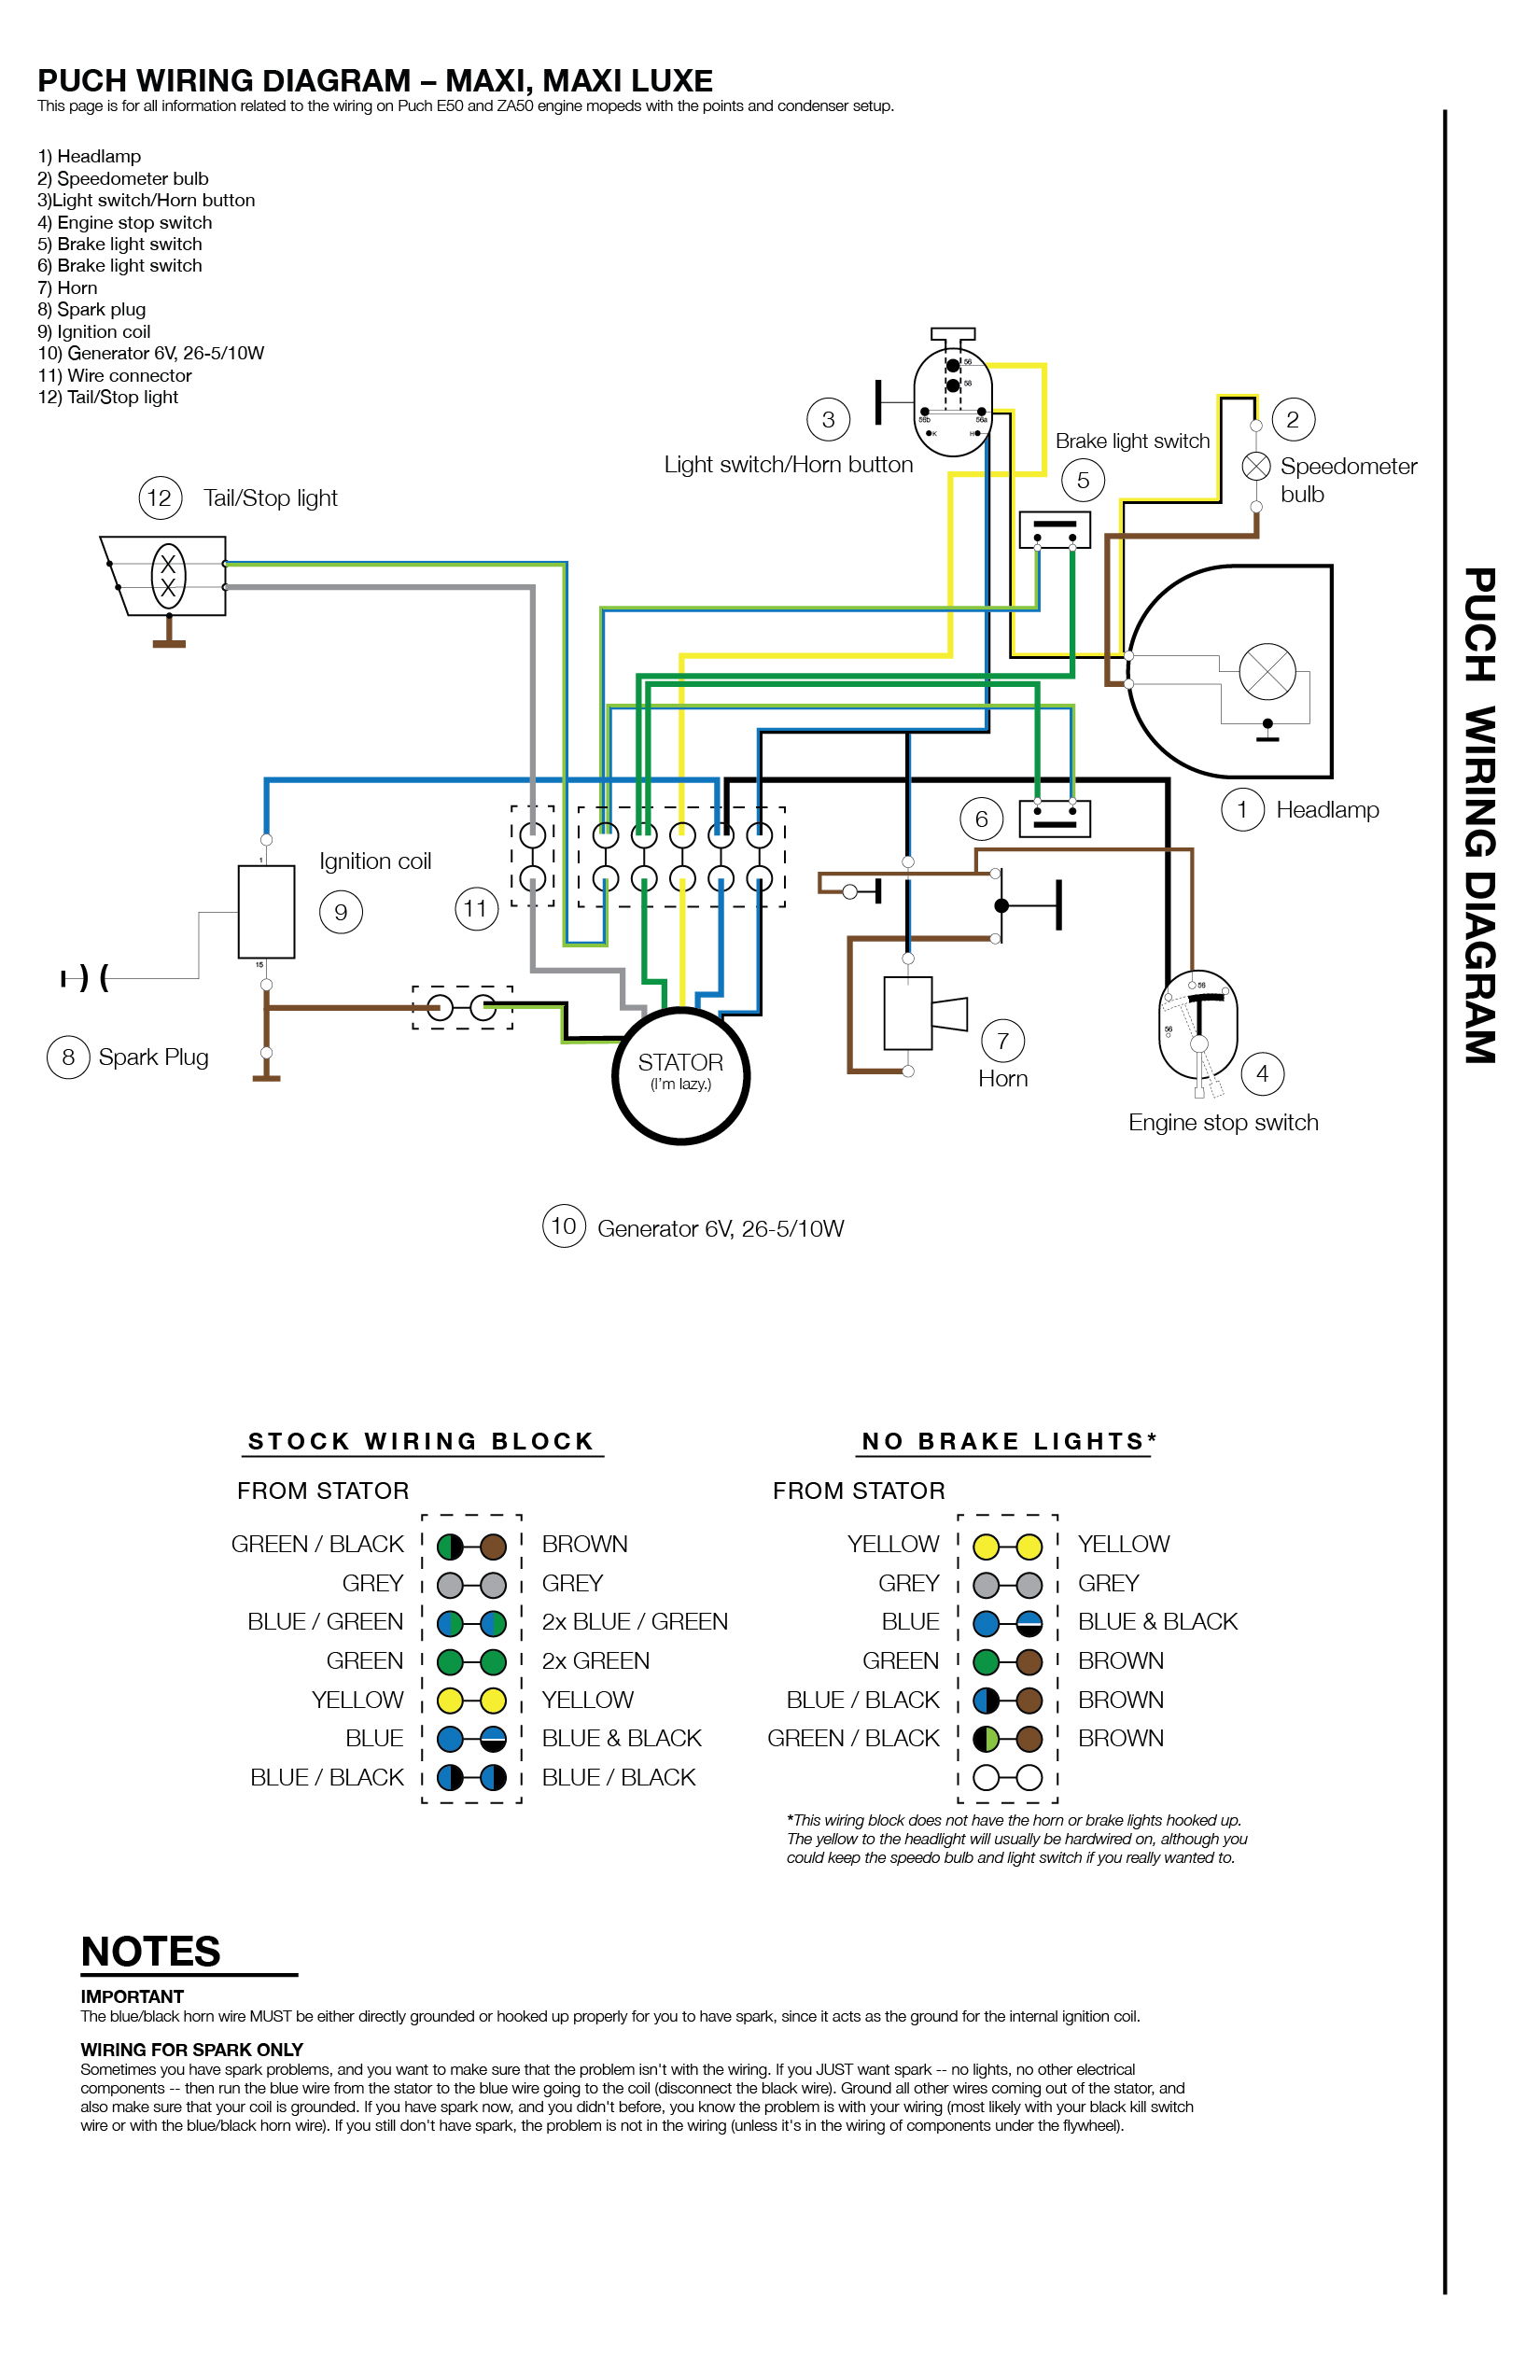 1980 5 Wire Cdi Diagram Wiring Library Light Switch Besides Scooter On Puch 02